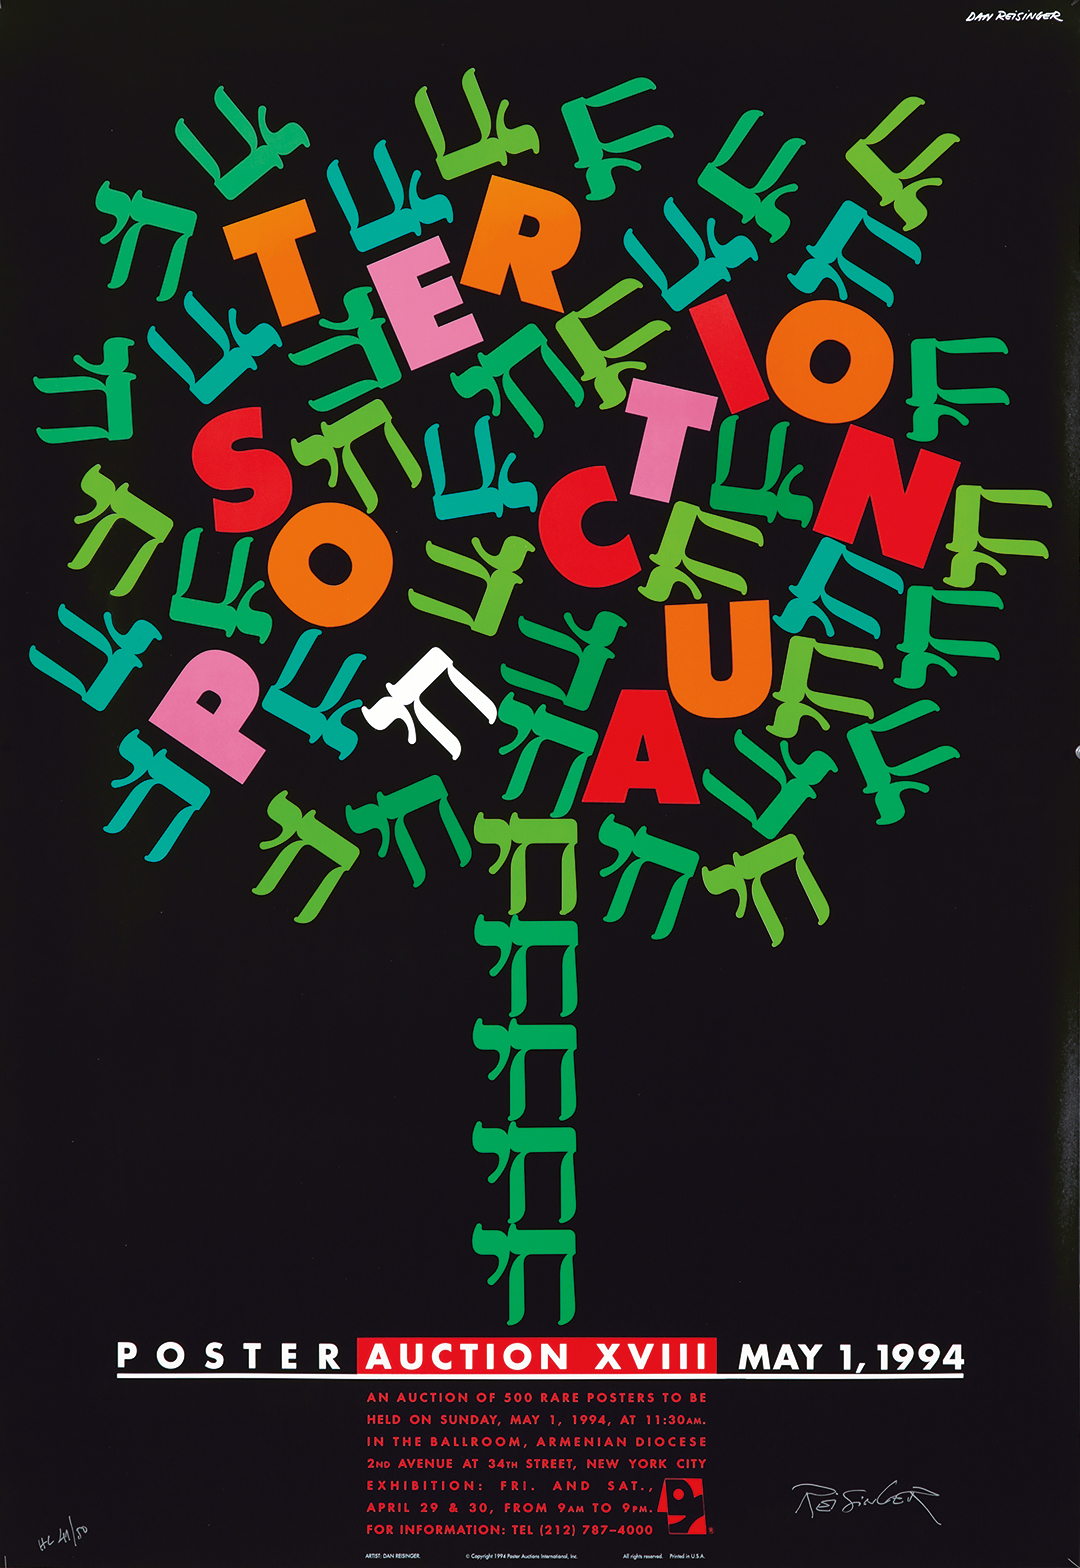 Poster Auction XVIII. 1994.